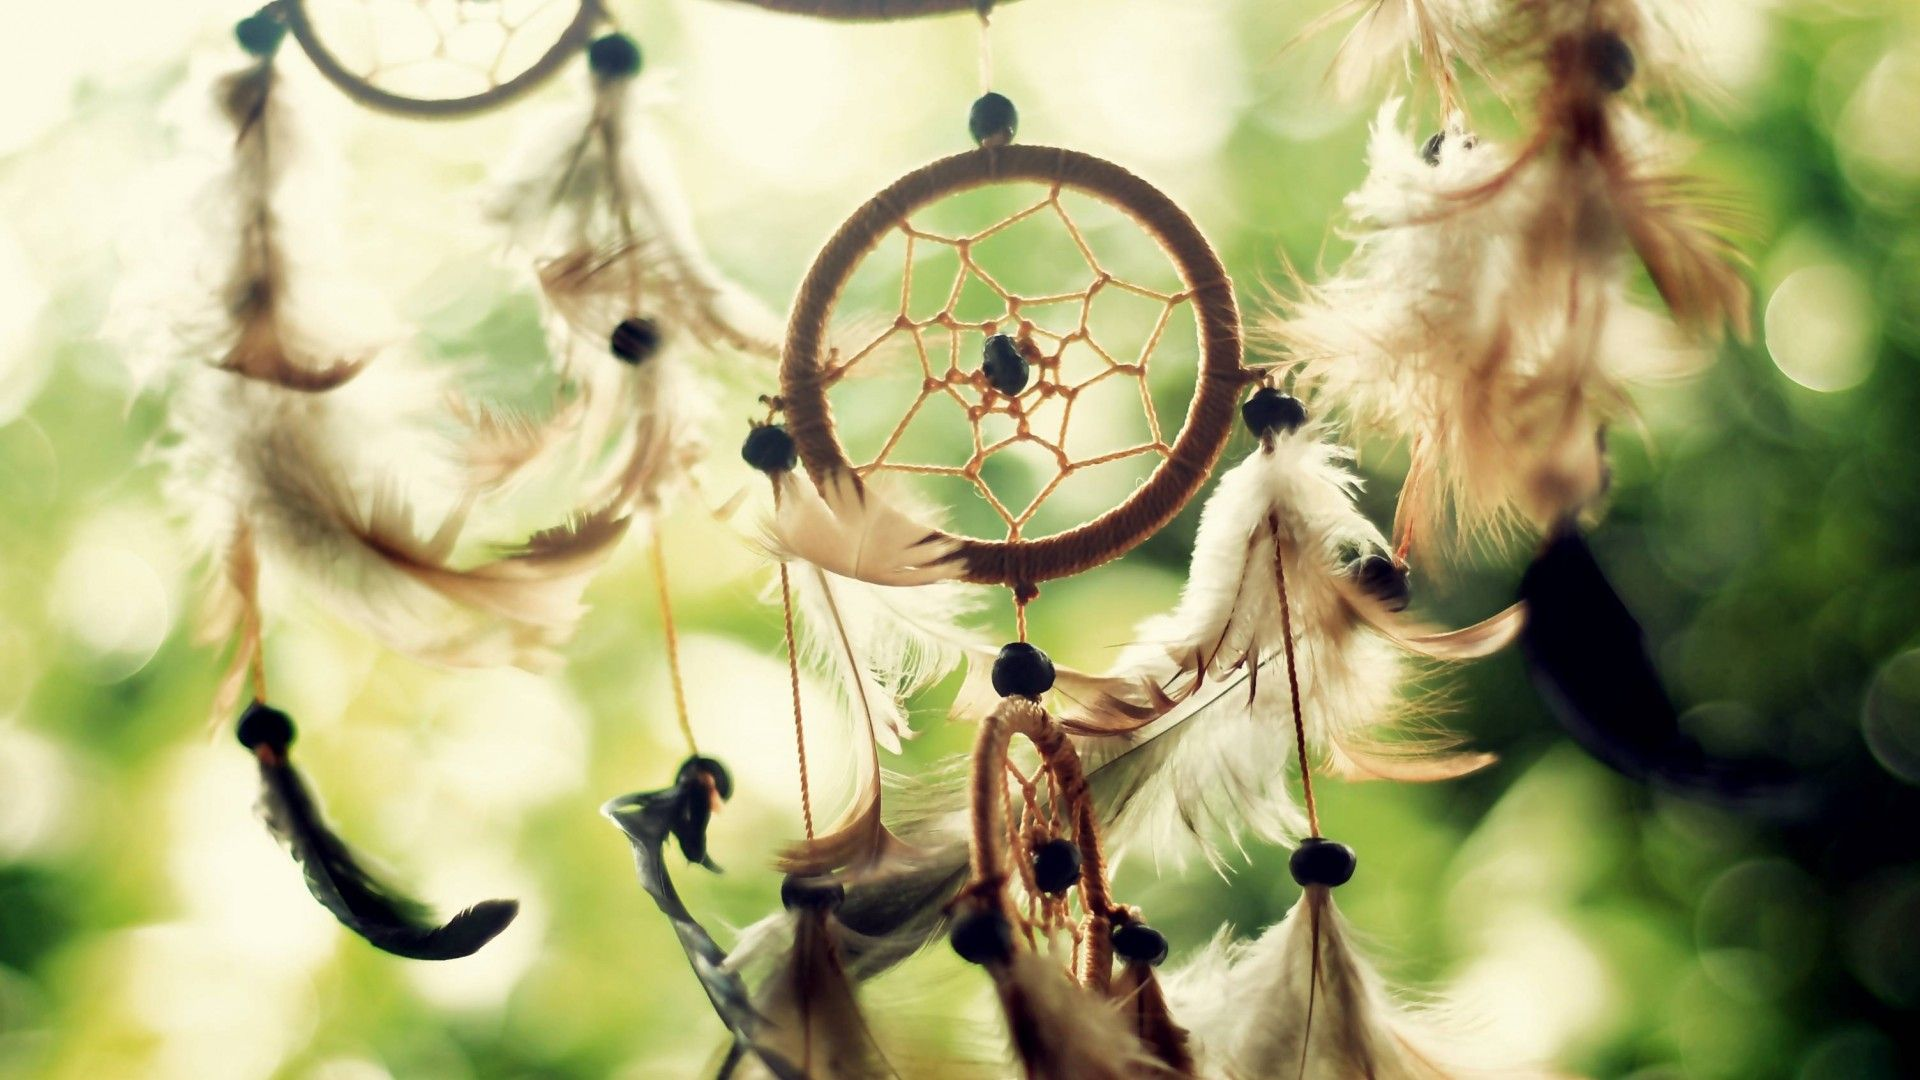 Desktop Dreamcatcher HD Wallpapers - Page 2 of 3 - wallpaper.wiki